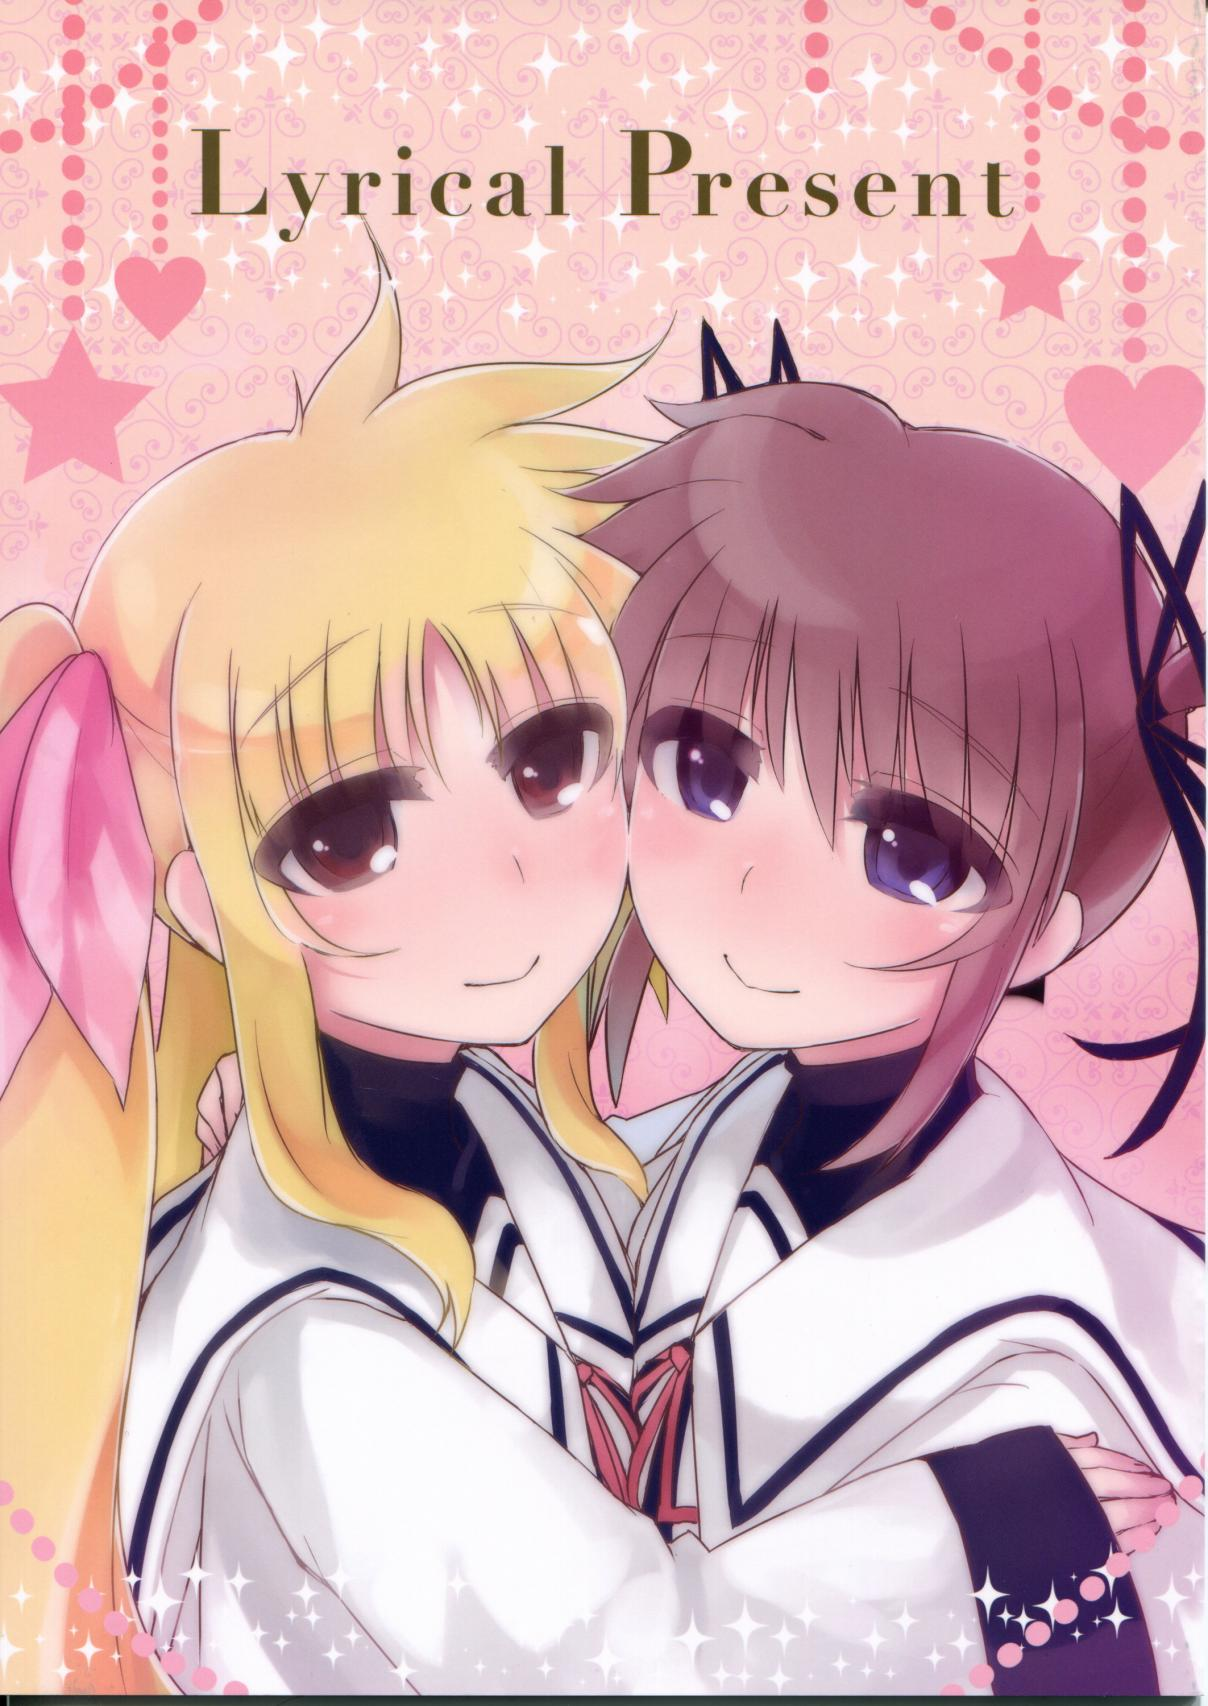 Mahou Shoujo Lyrical Nanoha Lyrical Present (Doujinshi) Oneshot